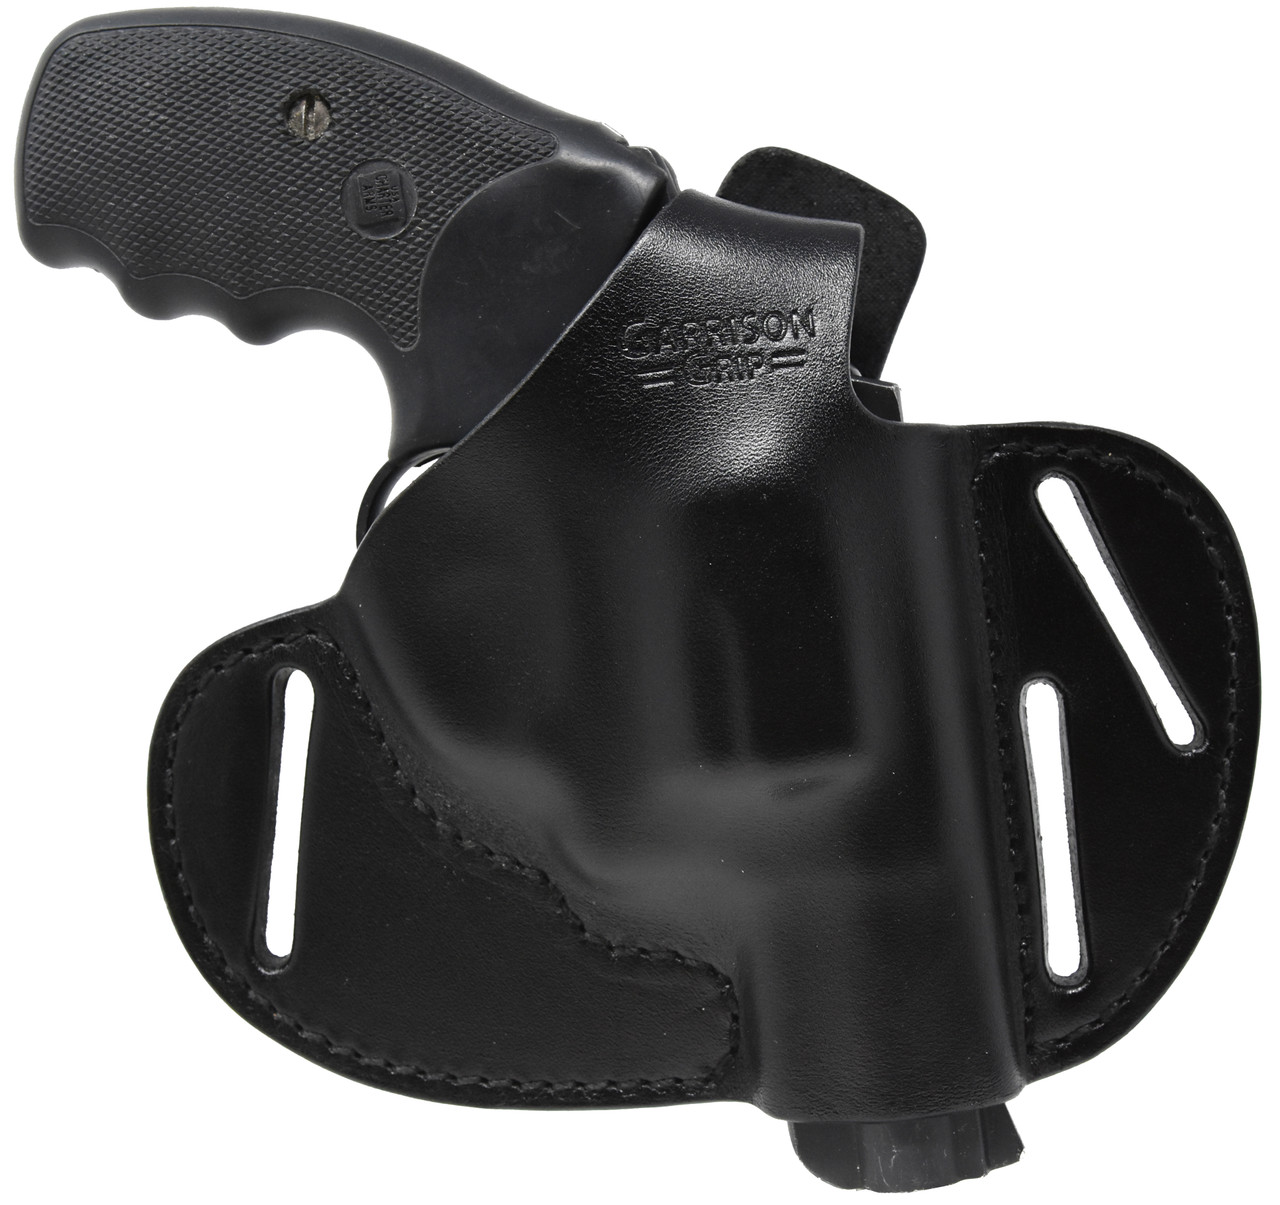 Garrison Grip Premium Full Grain Black Italian Leather 2 Position Tactical  Holster Fits Charter Arms 38 Special Undercover and Southpaw Revolvers